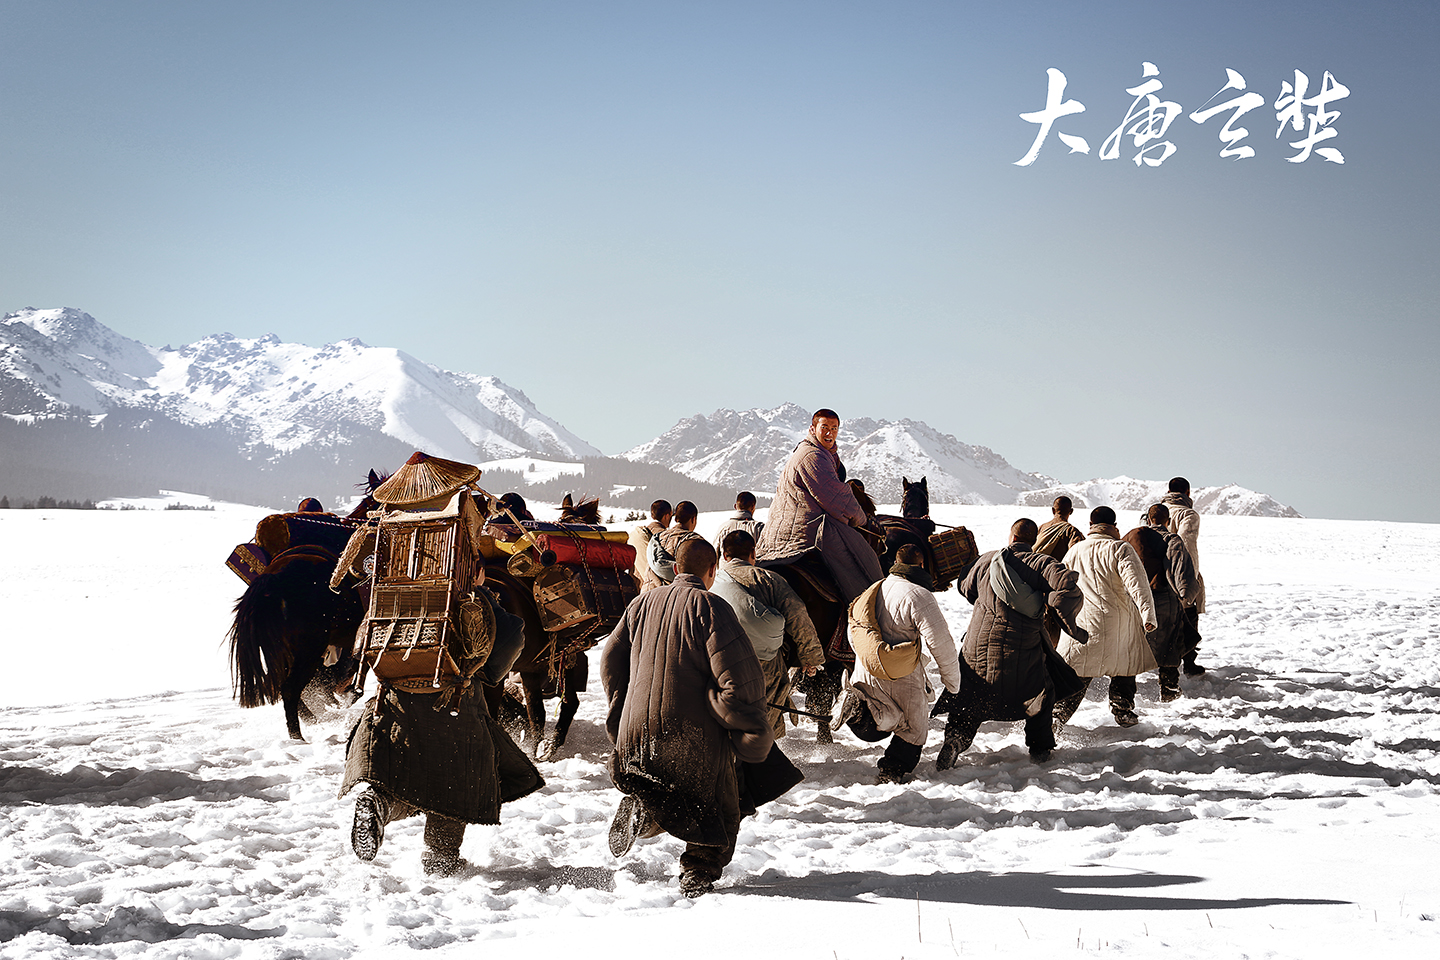 XUAN ZANG - CHINA    Official Oscars Submission for Foreign Language Film Award  Official Golden Globe Submission for Best Foreign Language Film Award